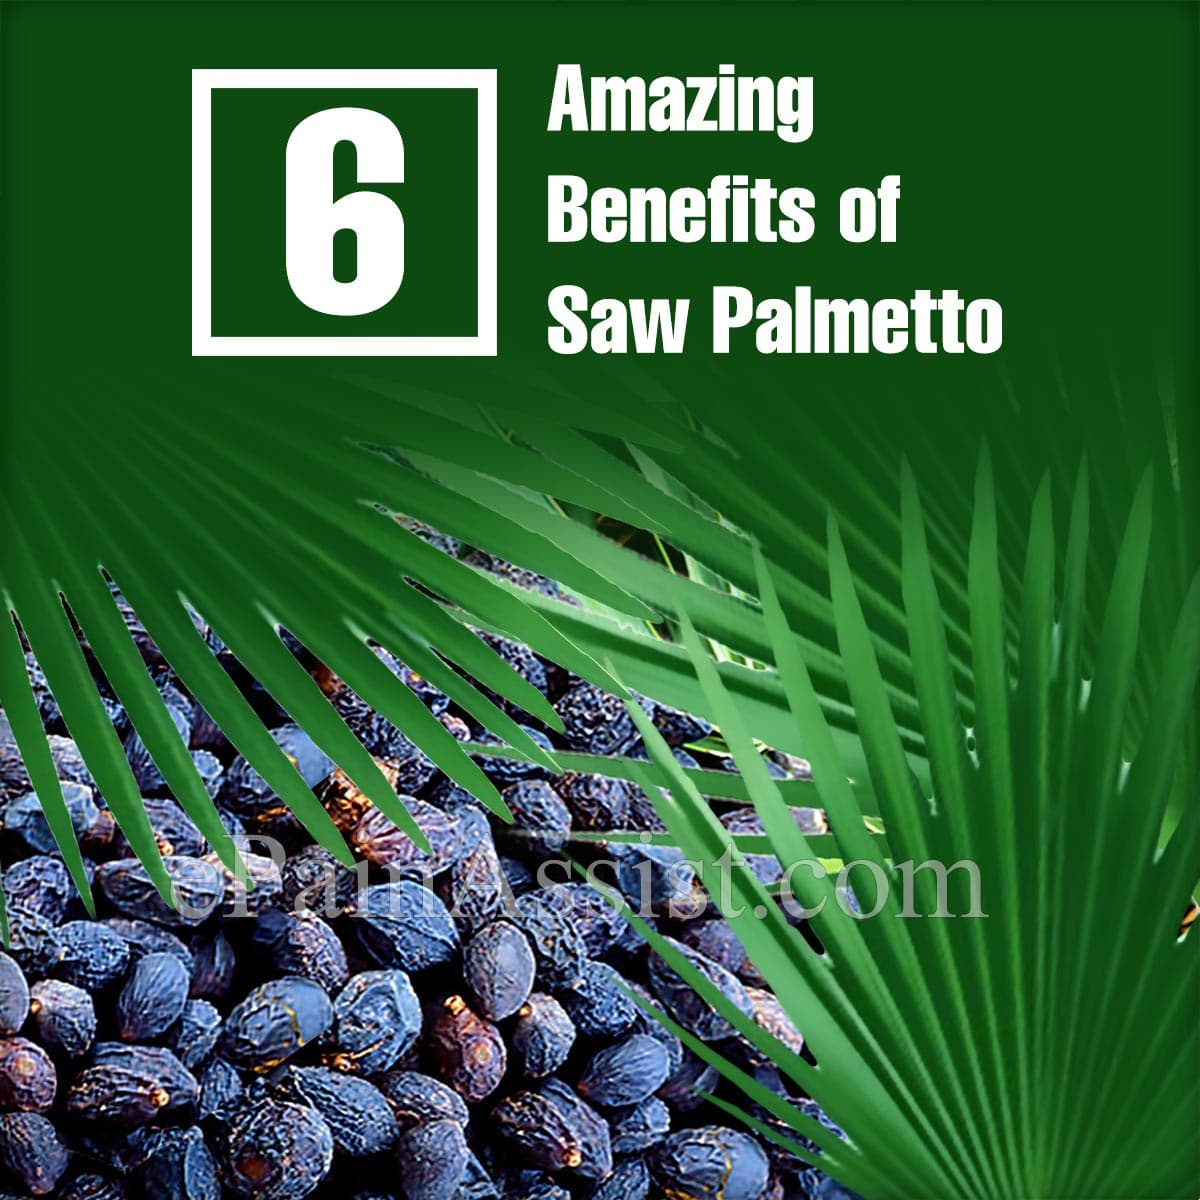 6 Amazing Benefits of Saw Palmetto